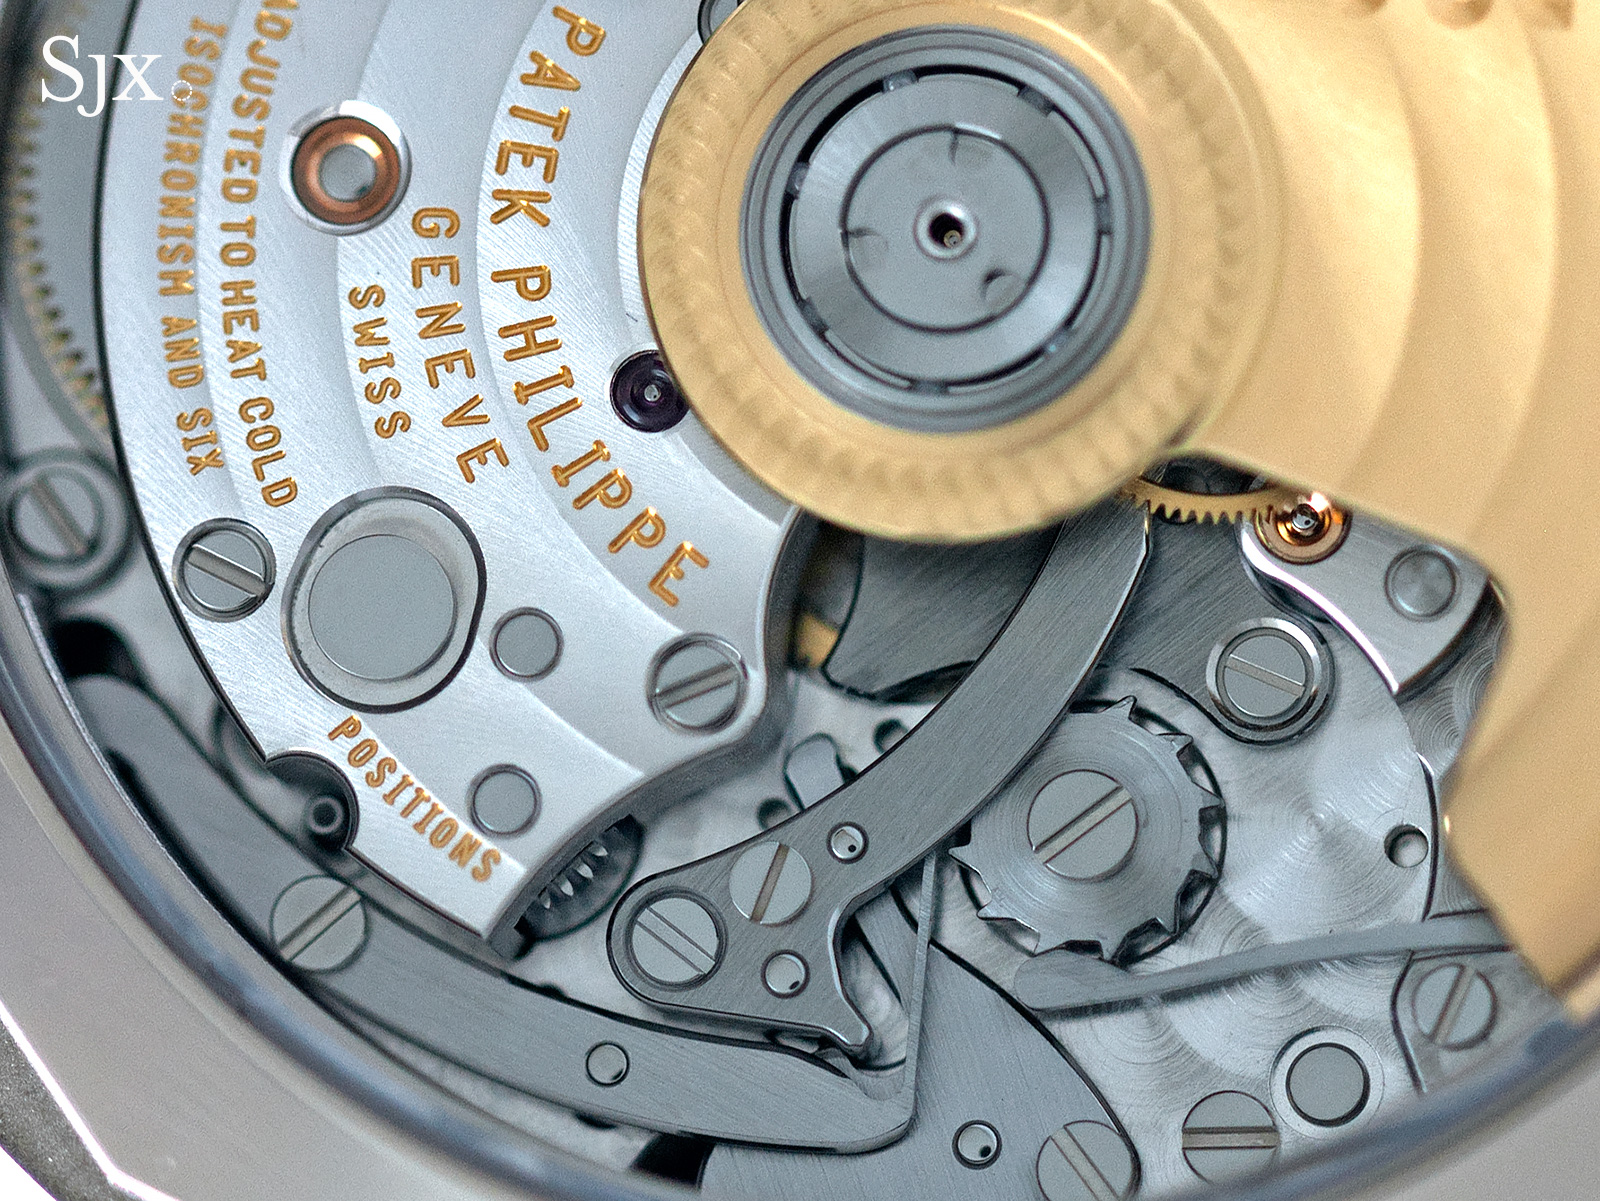 World Time Chronograph 5930 movement